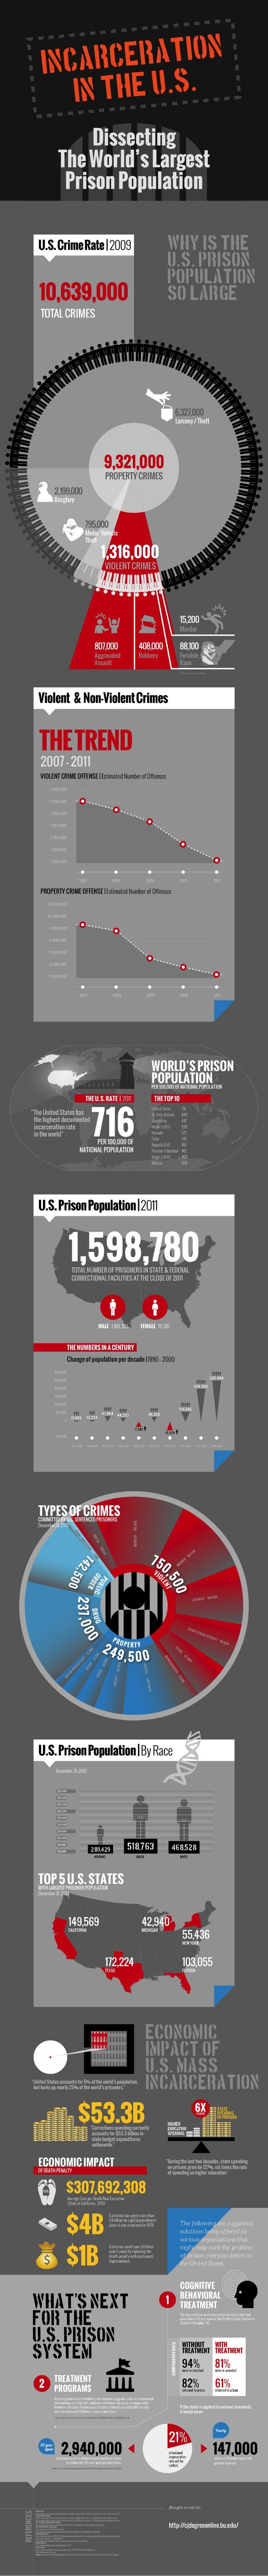 Incarceration in the US: Dissecting the World's Largest Prison Population